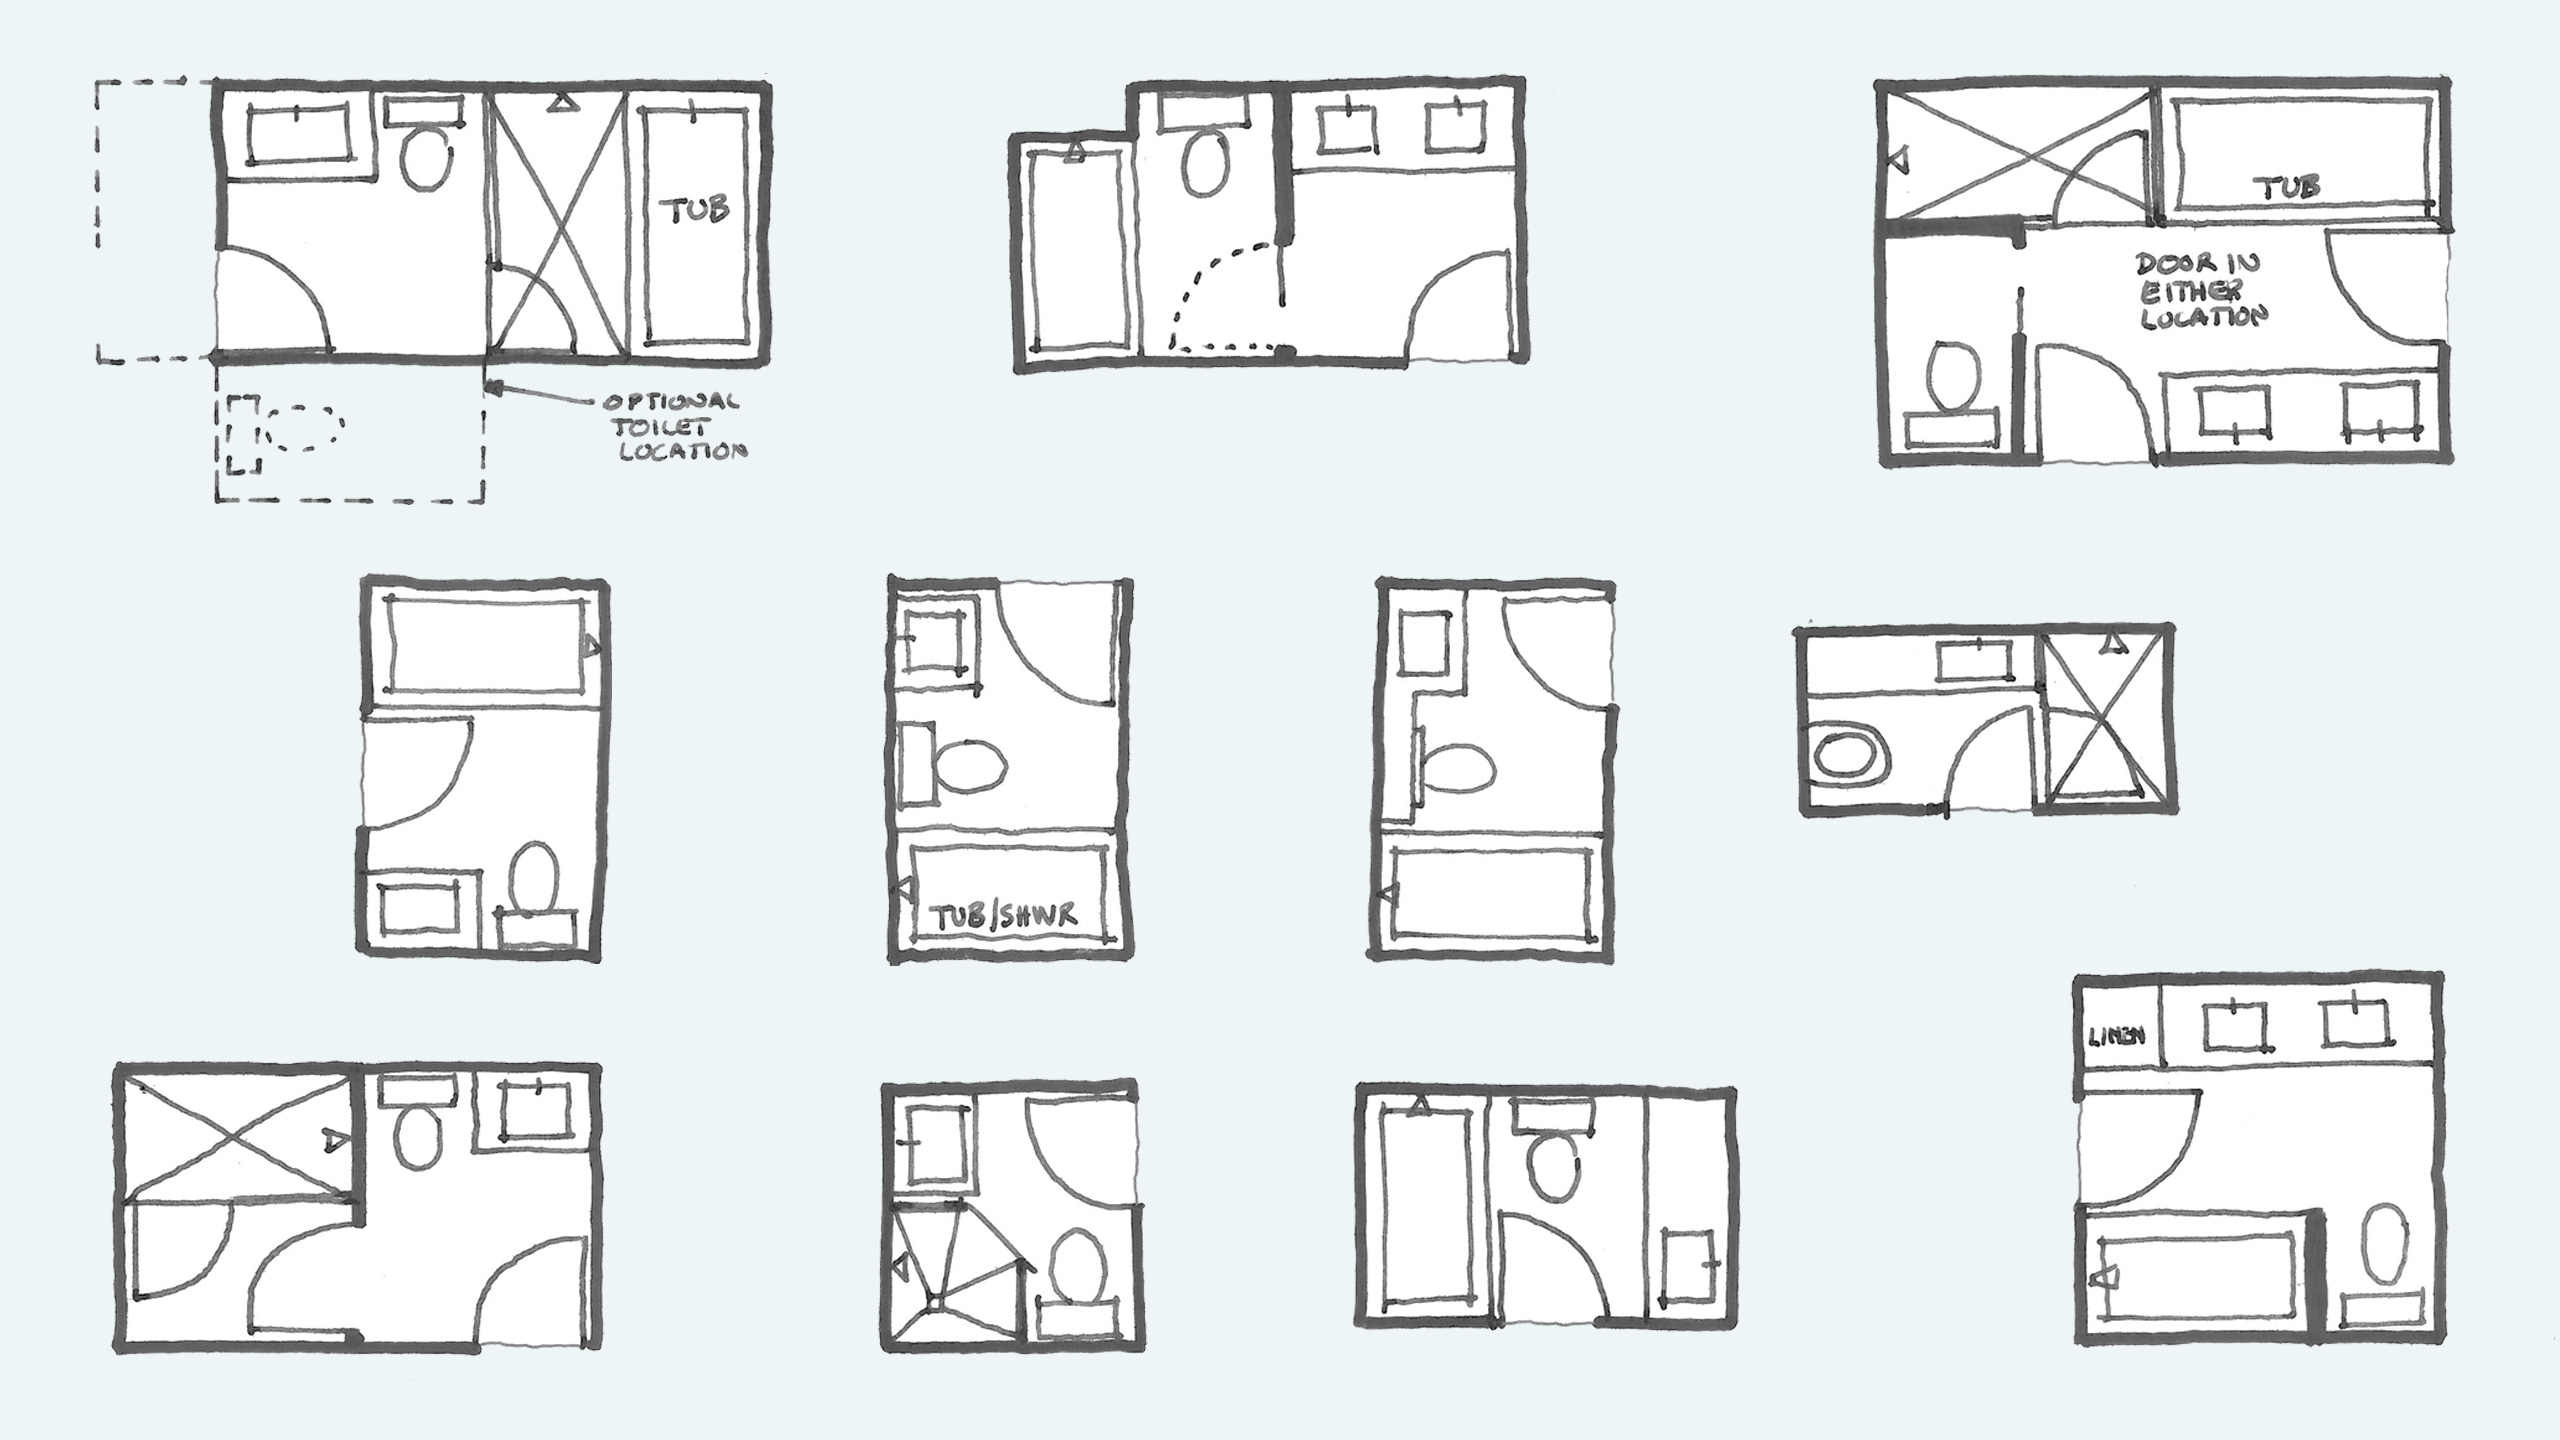 Common Bathroom Floor Plans: Rules of Thumb for Layout – Board